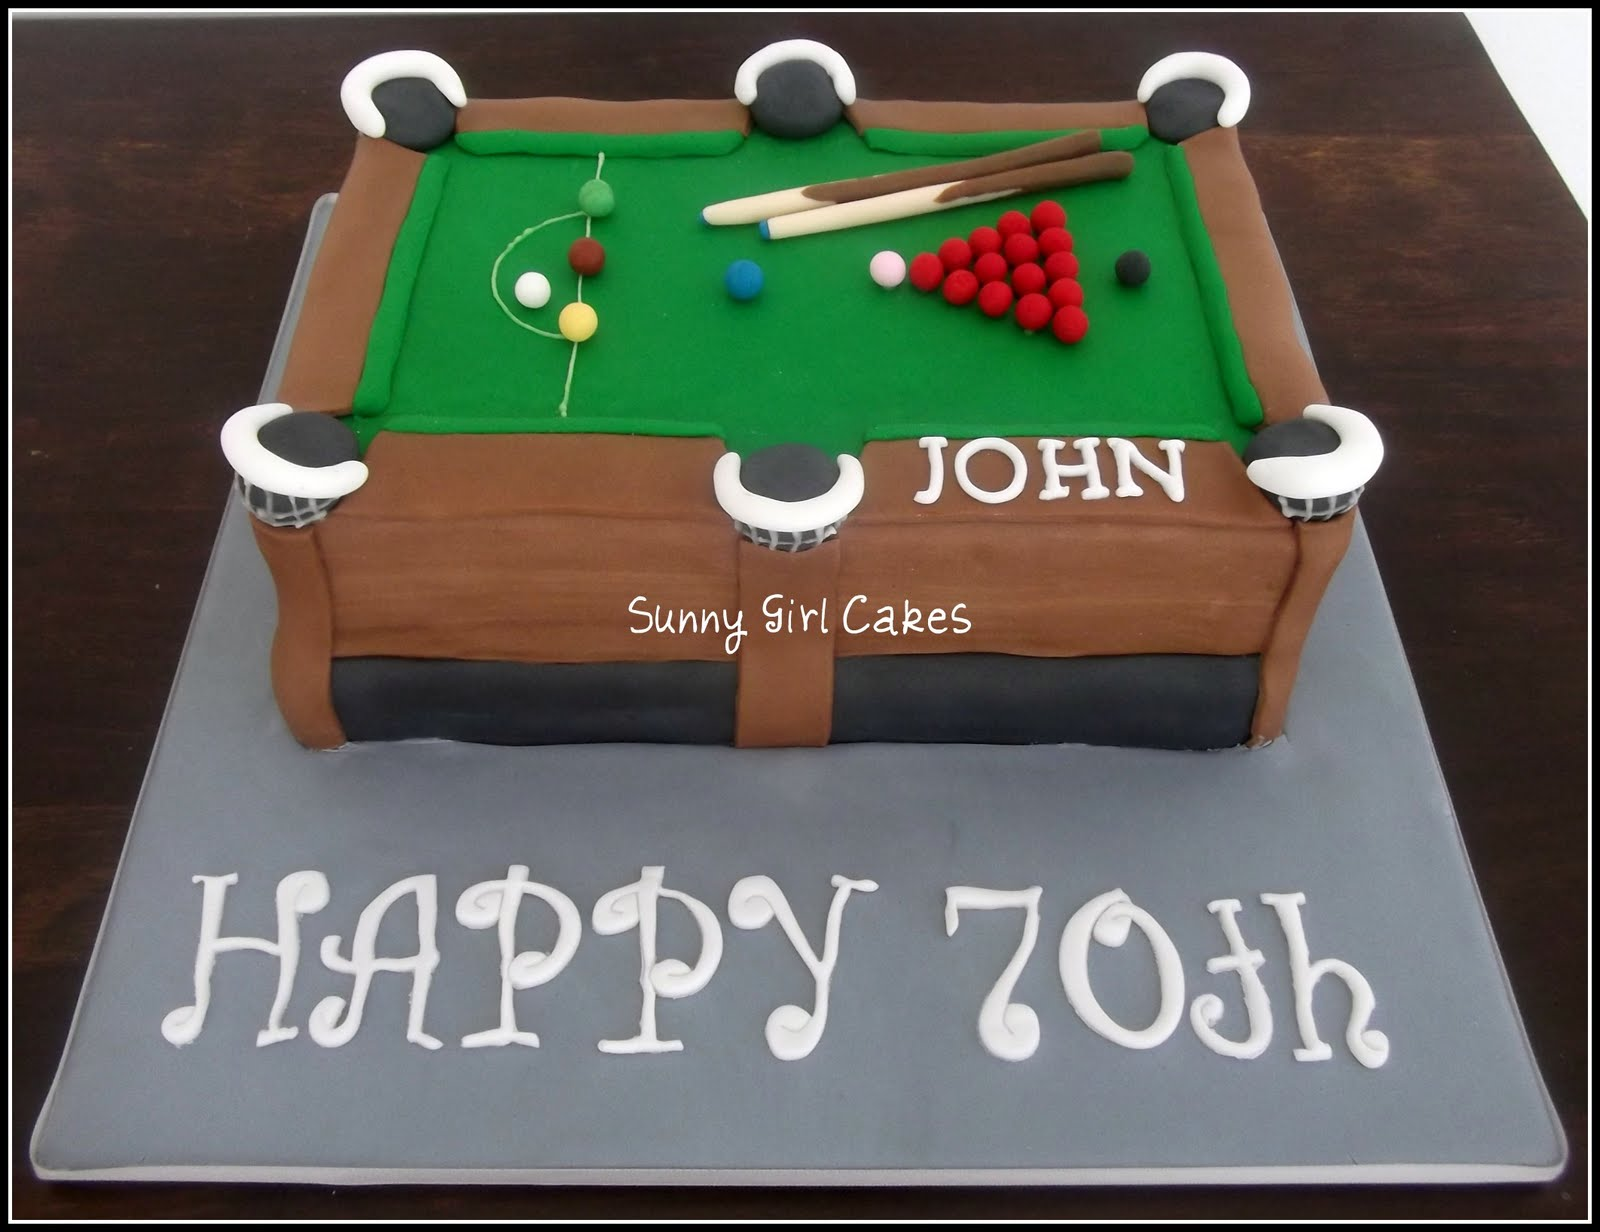 Snooker Cake Decorations